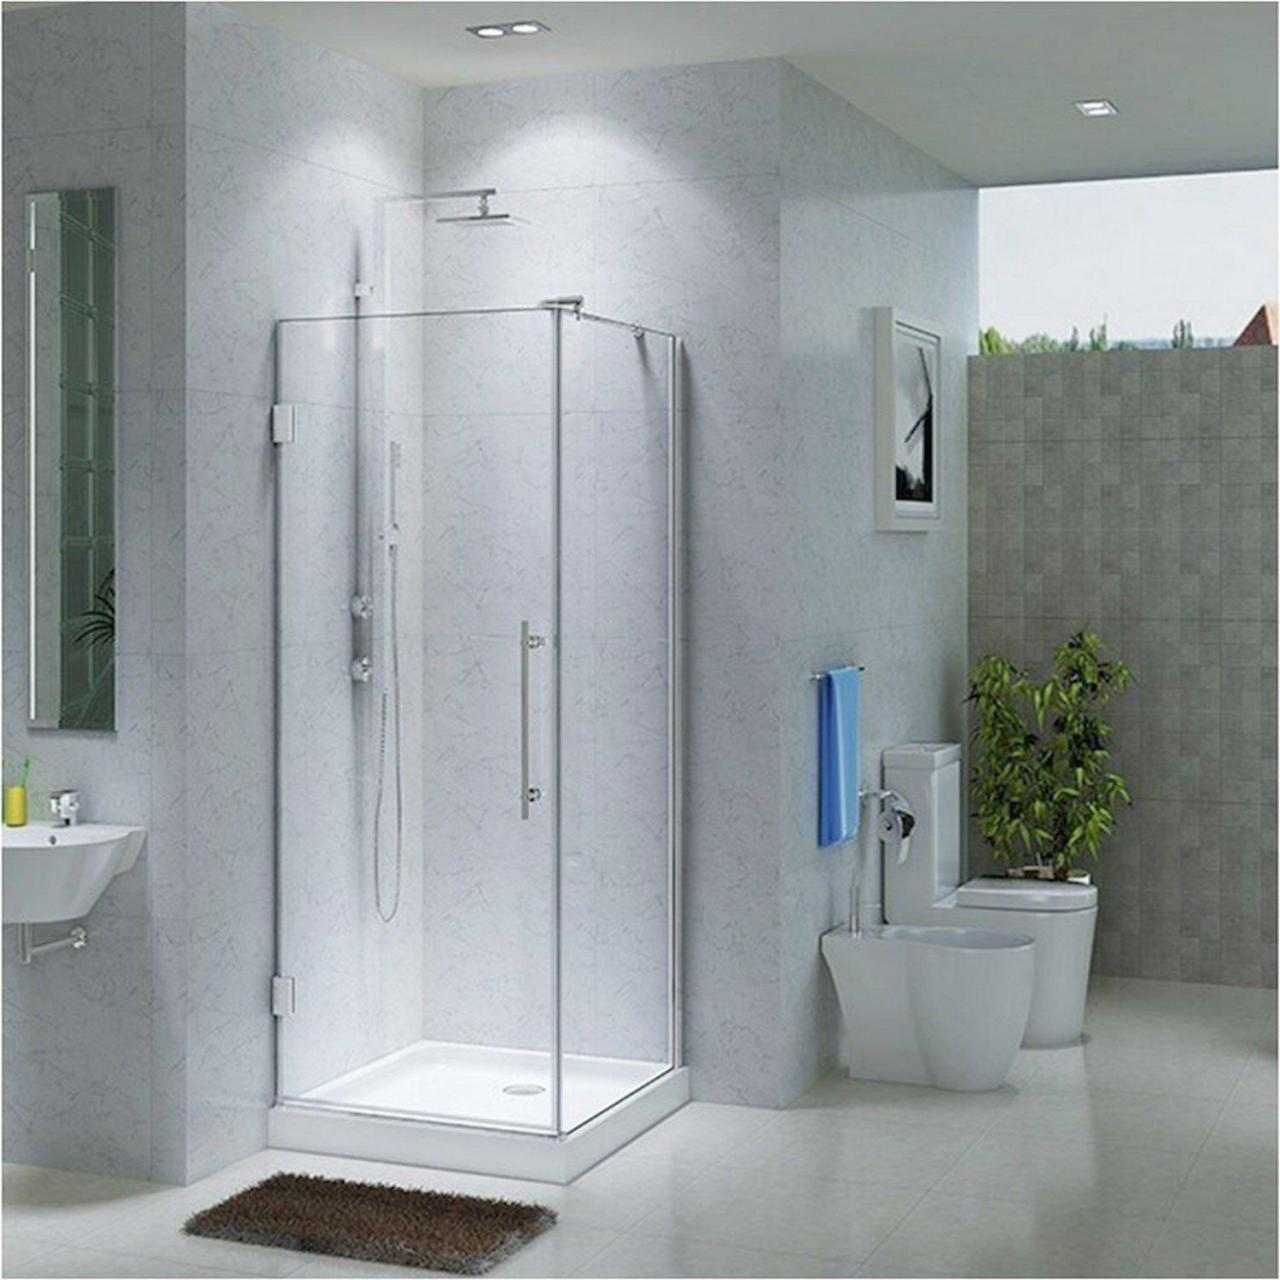 Buy cheap 36 by 36 shower product